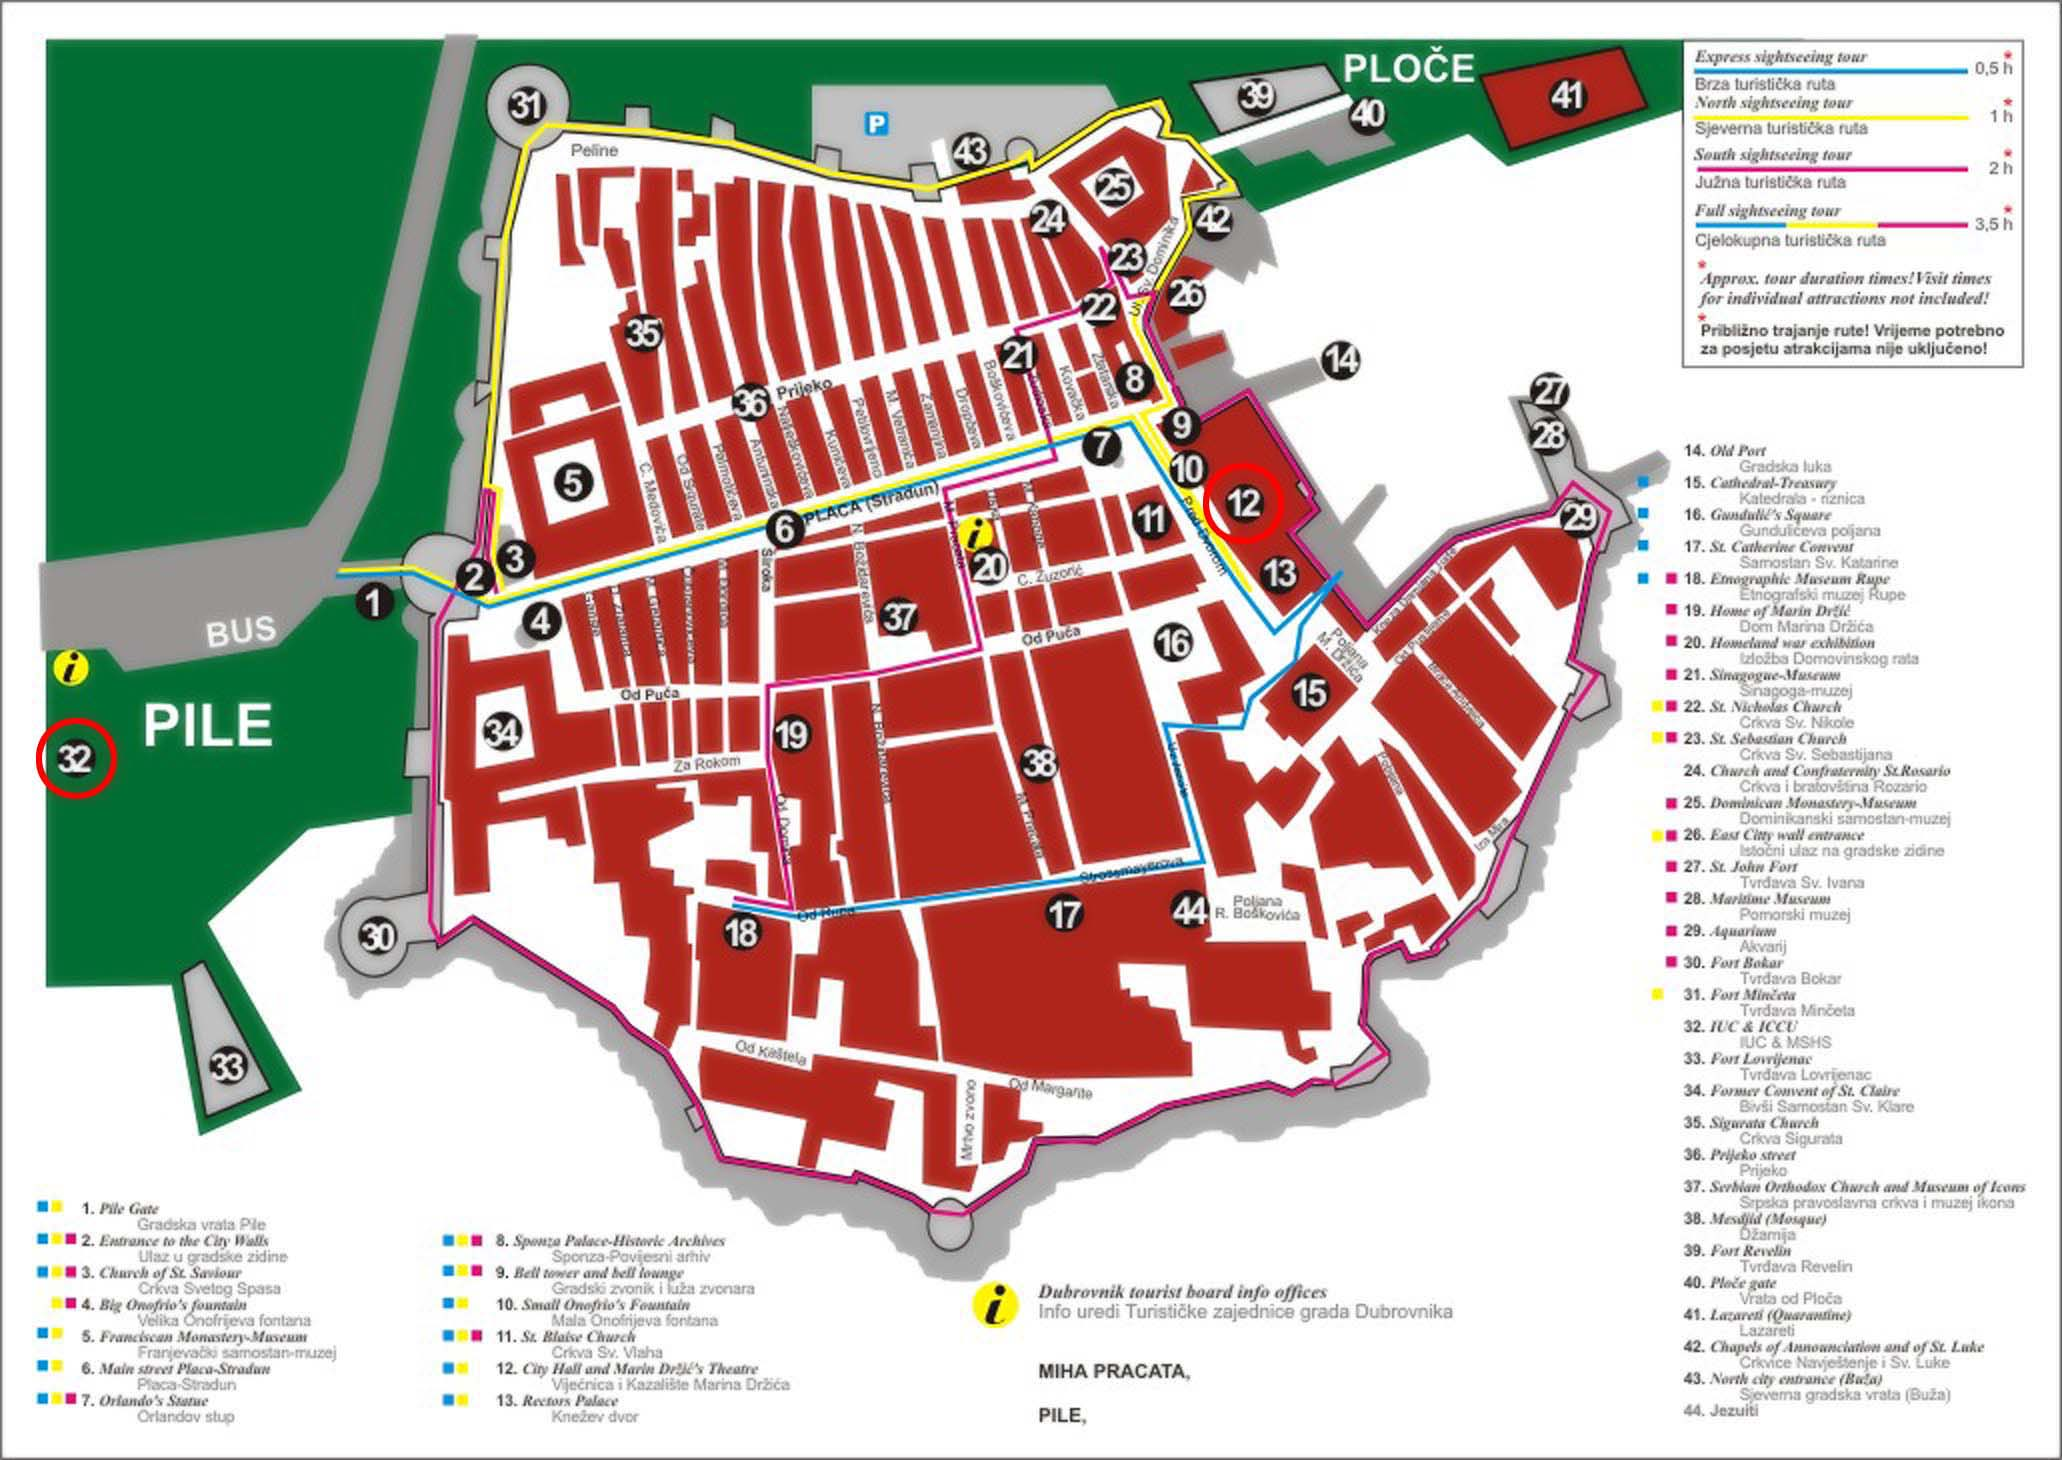 Travel to Dubrovnik - Maps and Plans of Dubrovnik and Dalmatia